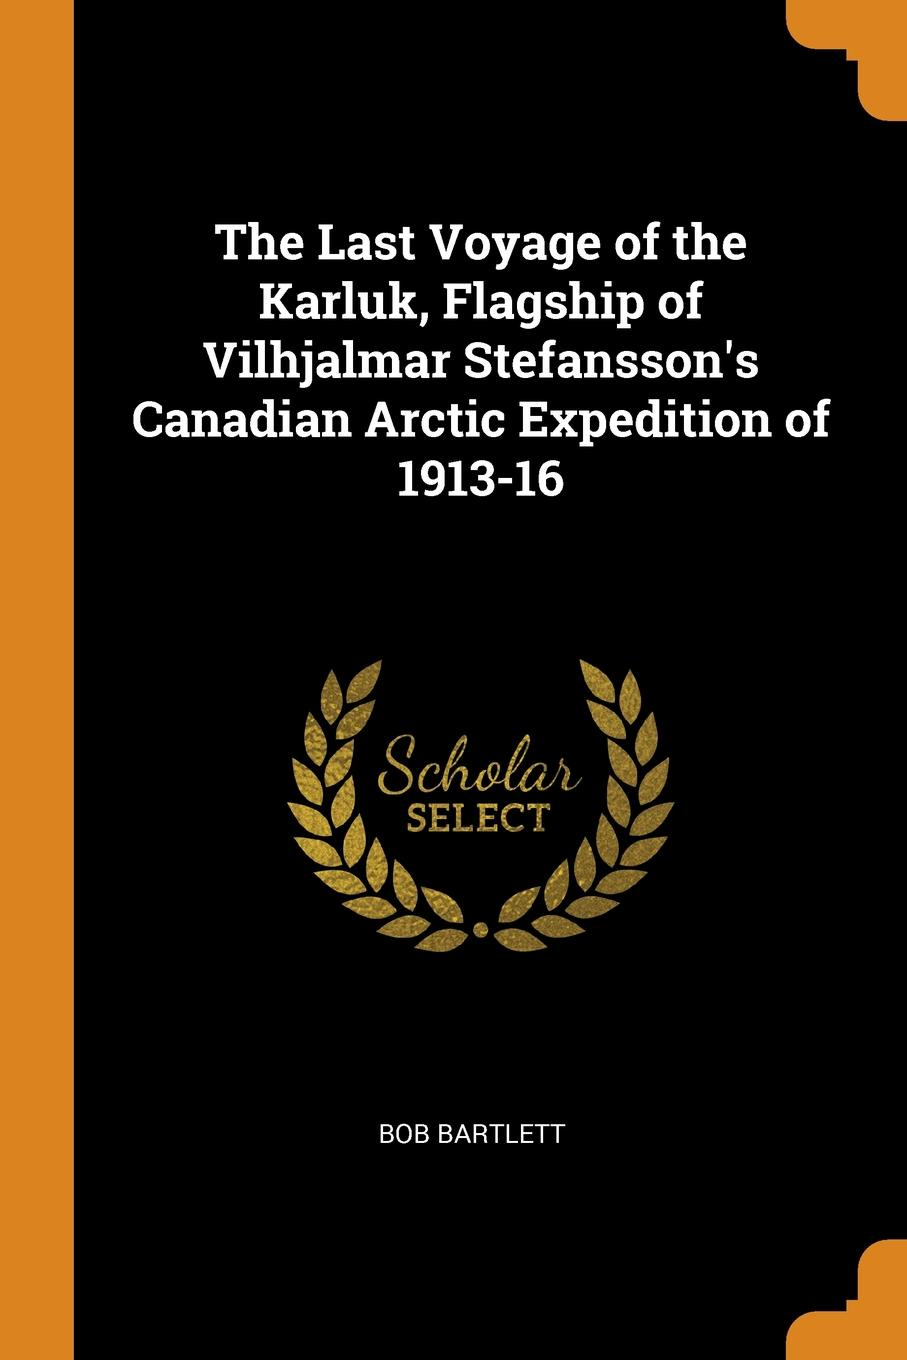 Bob Bartlett The Last Voyage of the Karluk, Flagship of Vilhjalmar Stefansson.s Canadian Arctic Expedition of 1913-16